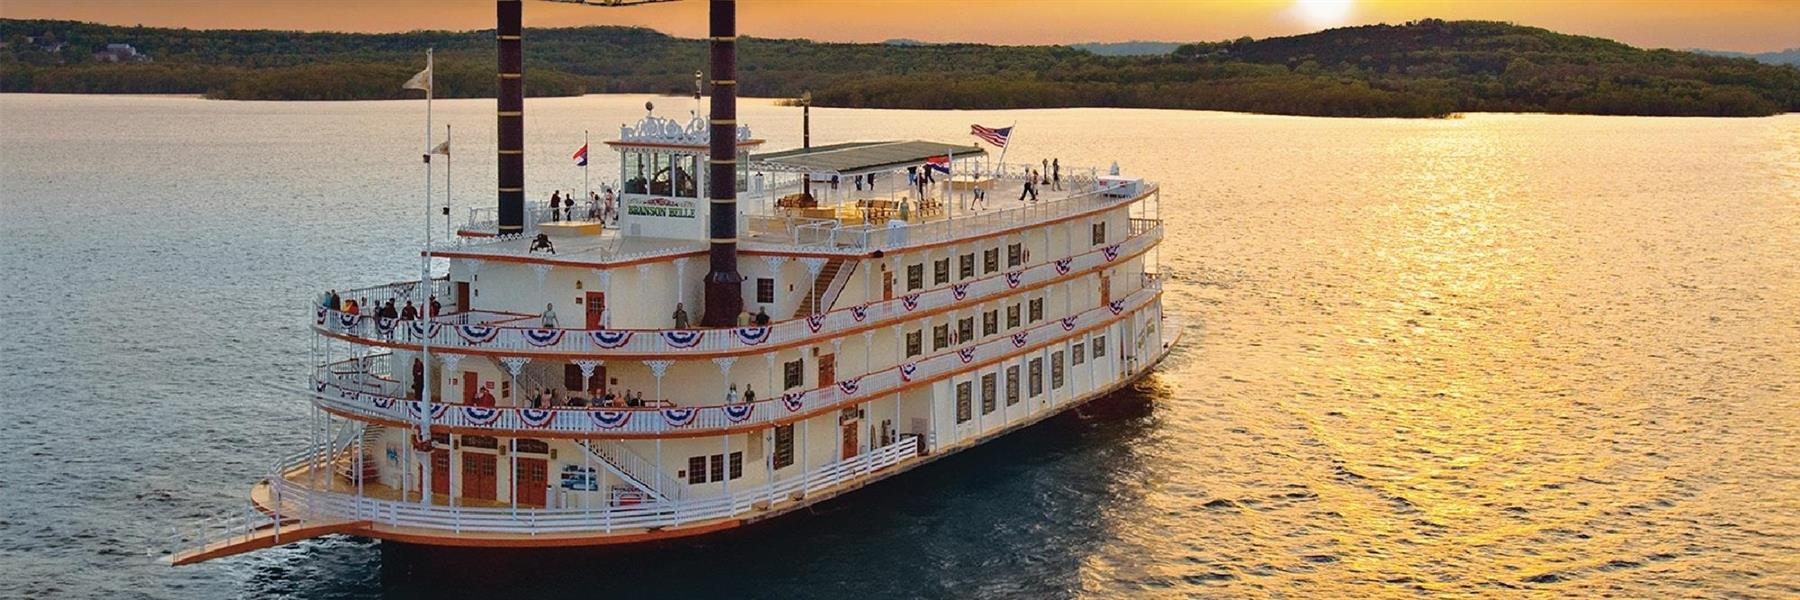 Showboat Branson Belle in Branson, Missouri